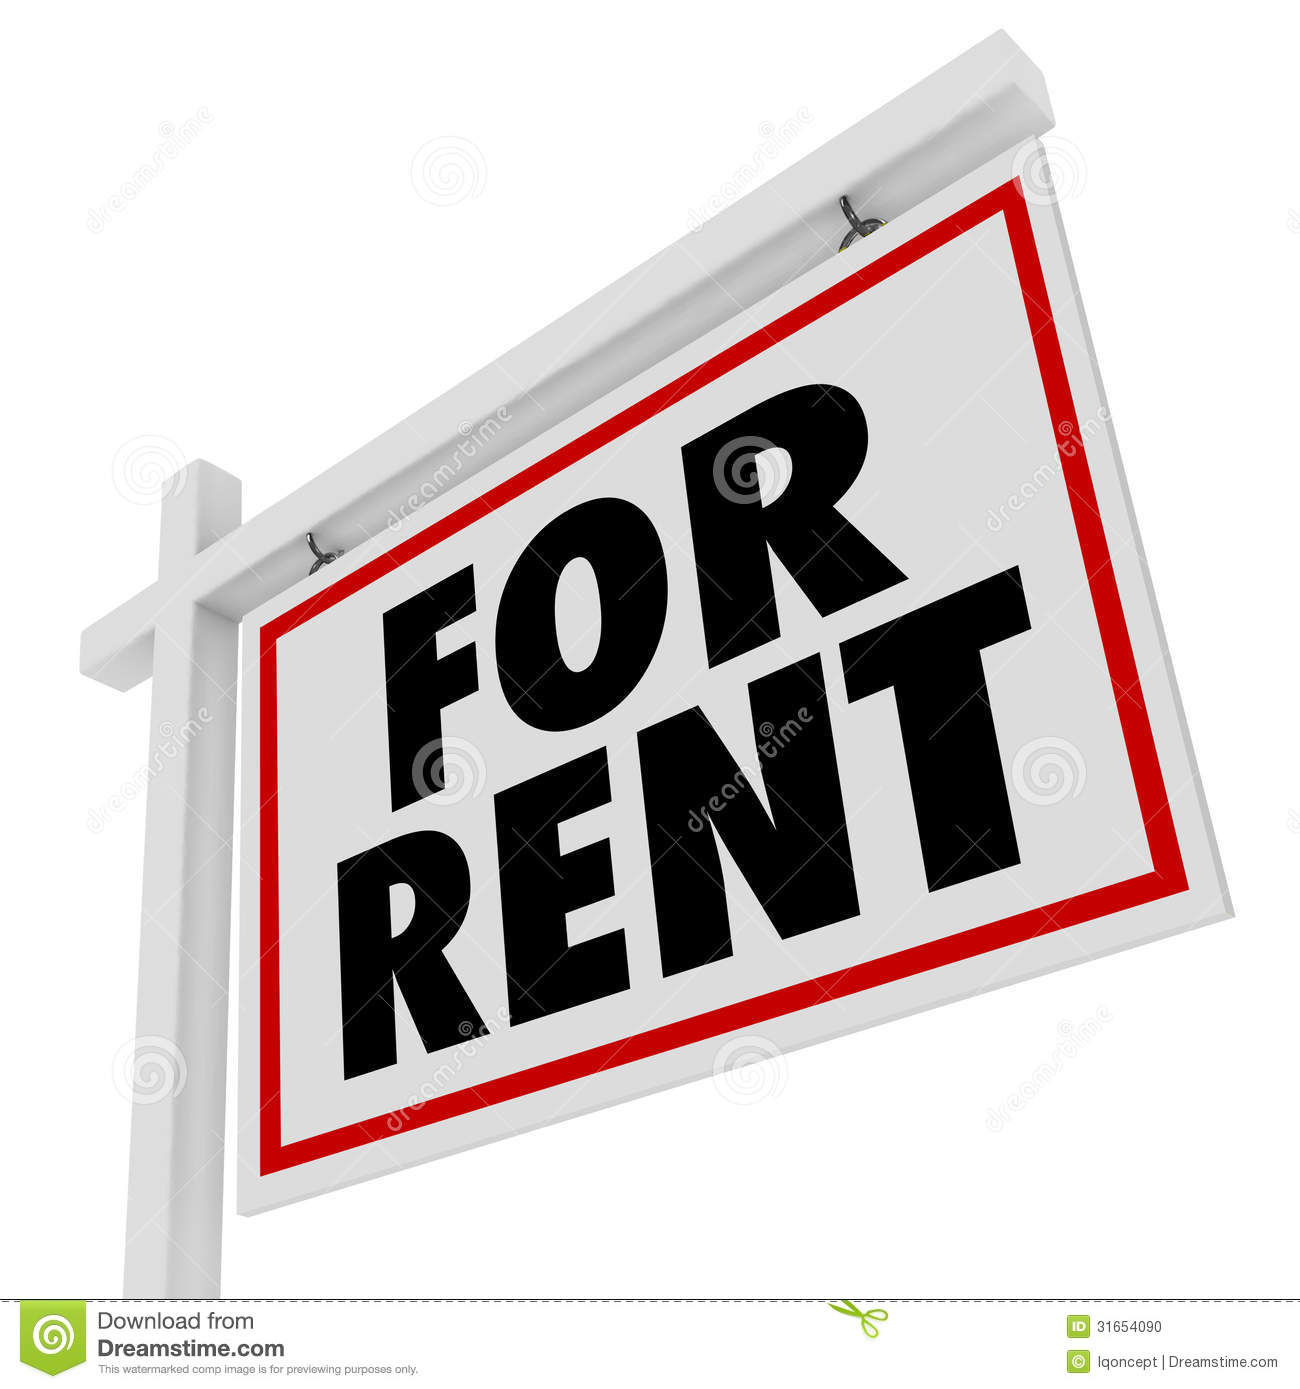 Apartmentrent: For Rent Real Estate Home Rental House Sign Stock Photo